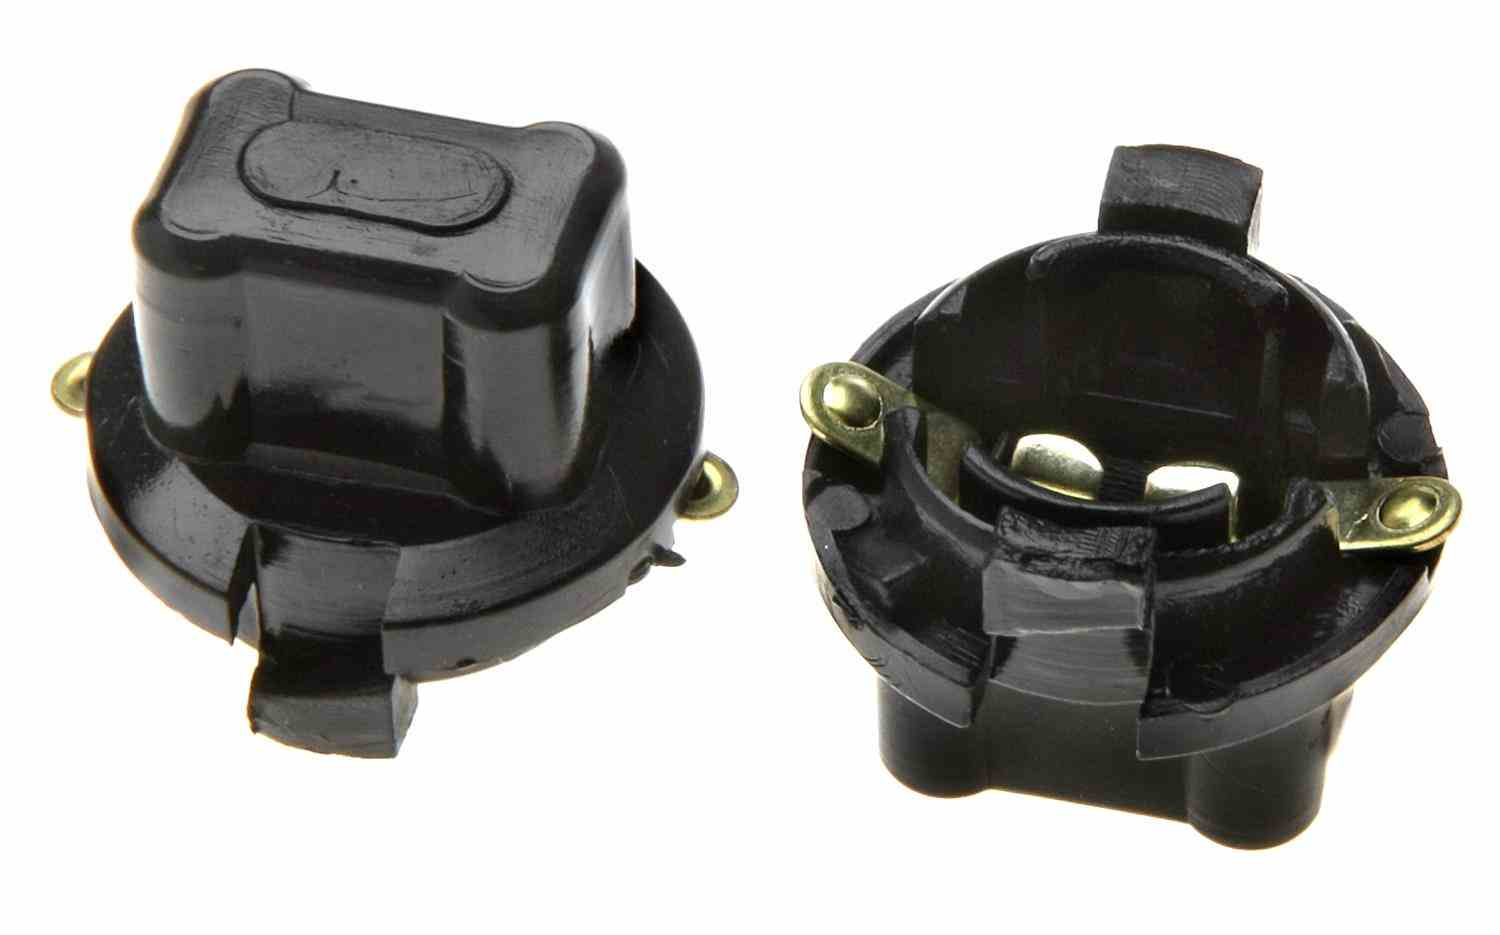 ACDELCO GOLD/PROFESSIONAL - Instrument Panel Light Socket - DCC LS132